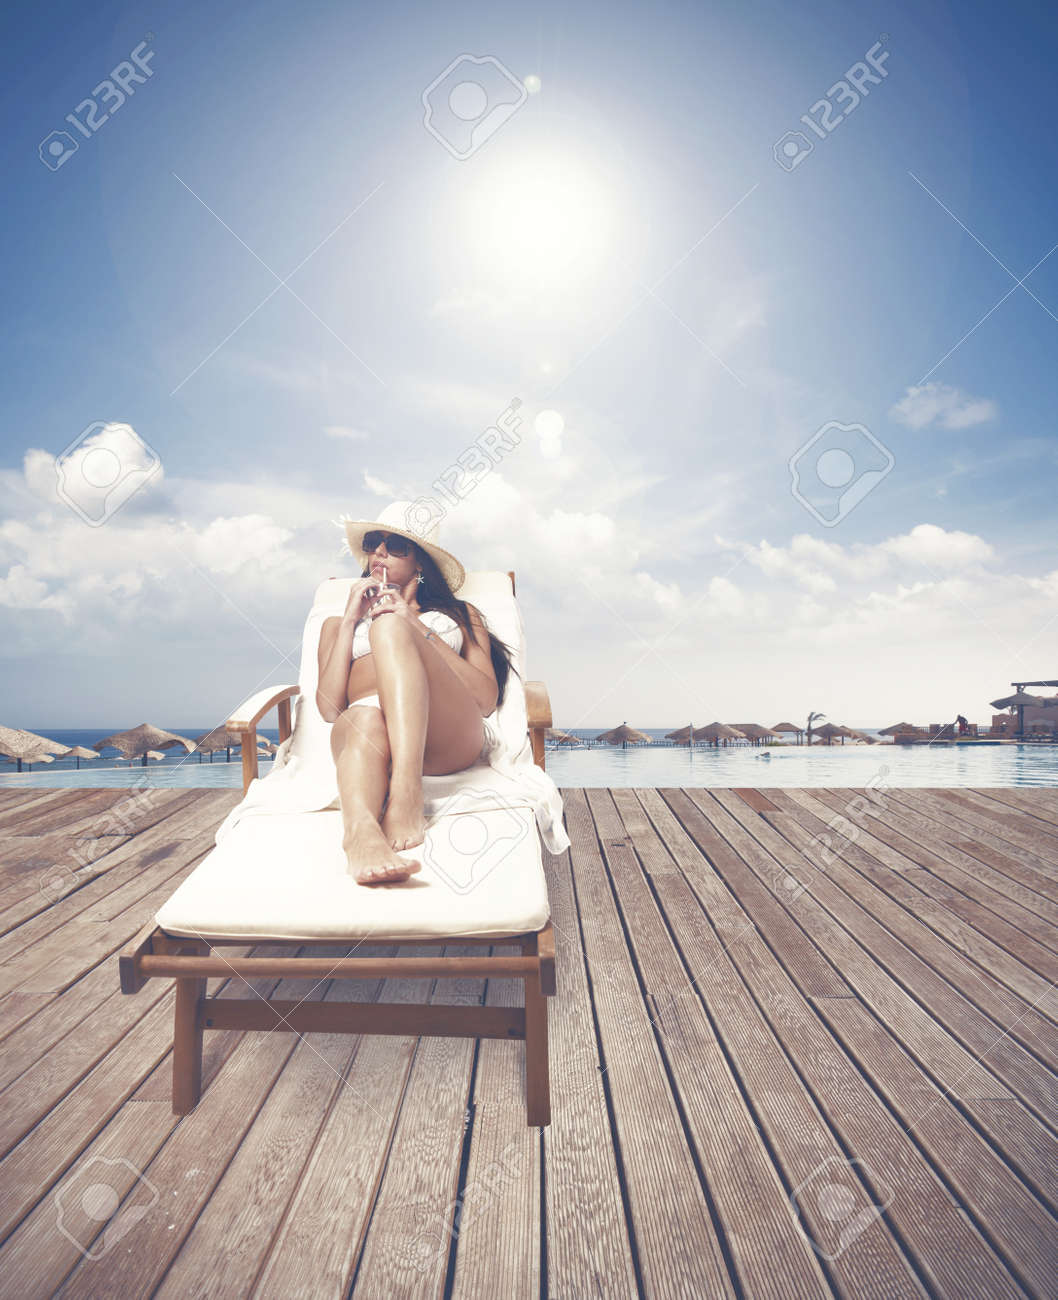 Girl relaxing on a tropical beach resort Stock Photo - 19609309